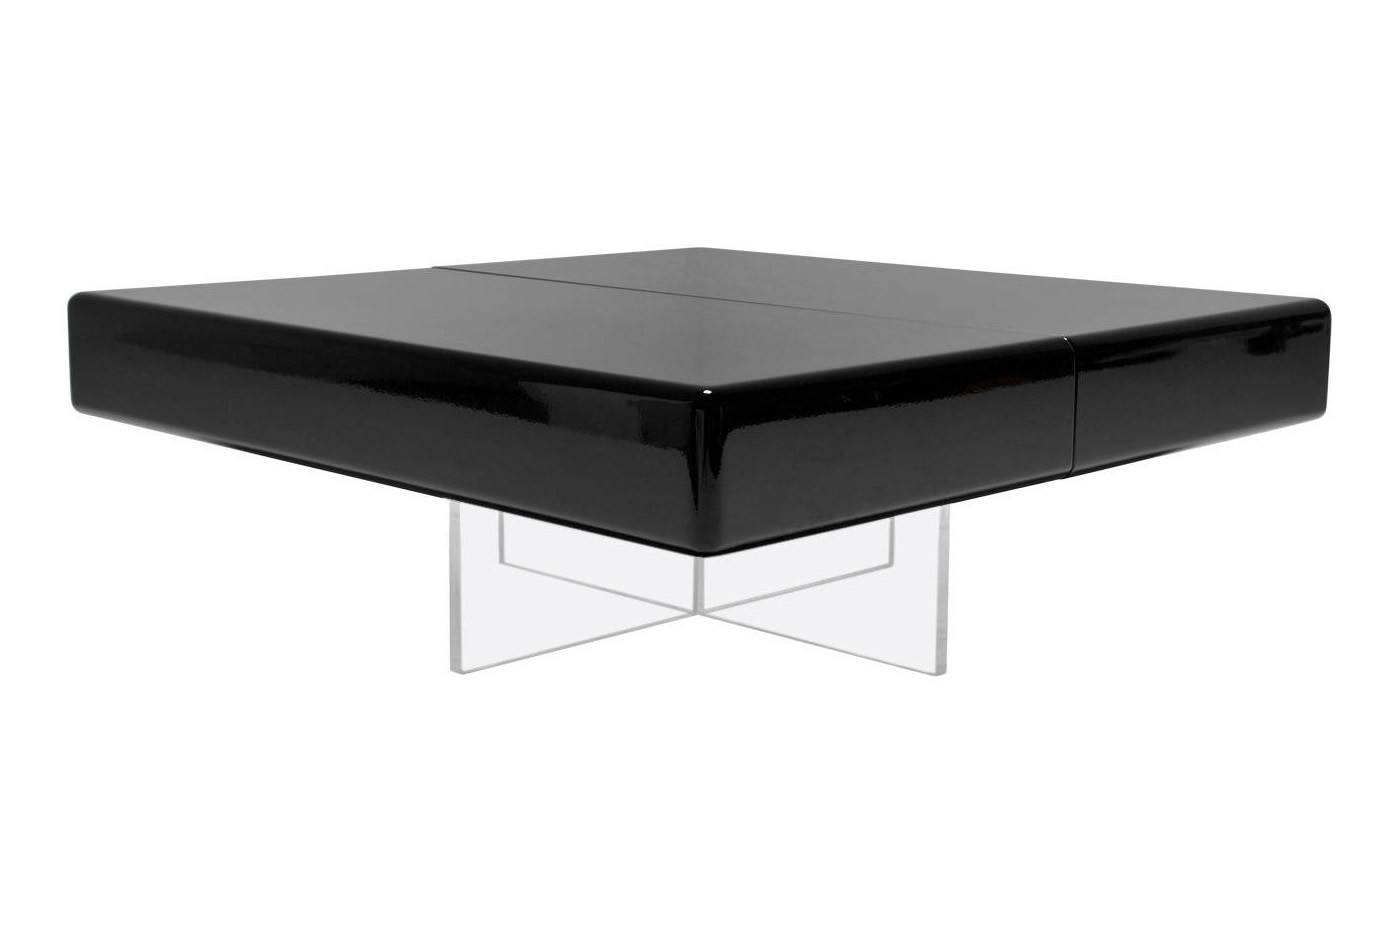 Black Lacquer Coffee Table With Perspex Base For Sale At Pamono pertaining to Lacquer Coffee Tables (Image 6 of 30)